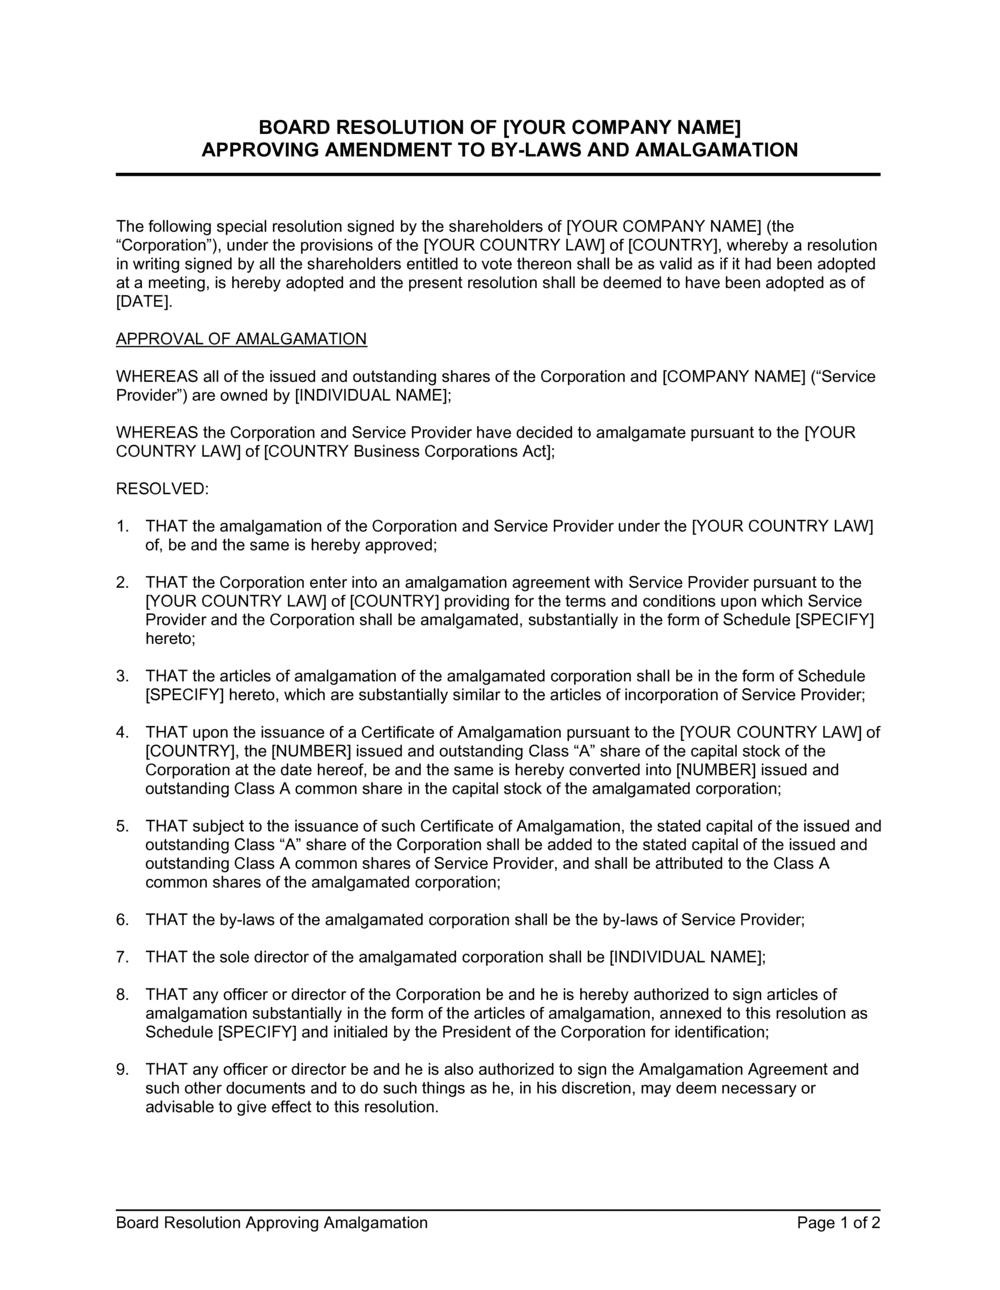 Business-in-a-Box's Board Resolution Approving Amalgamation Template